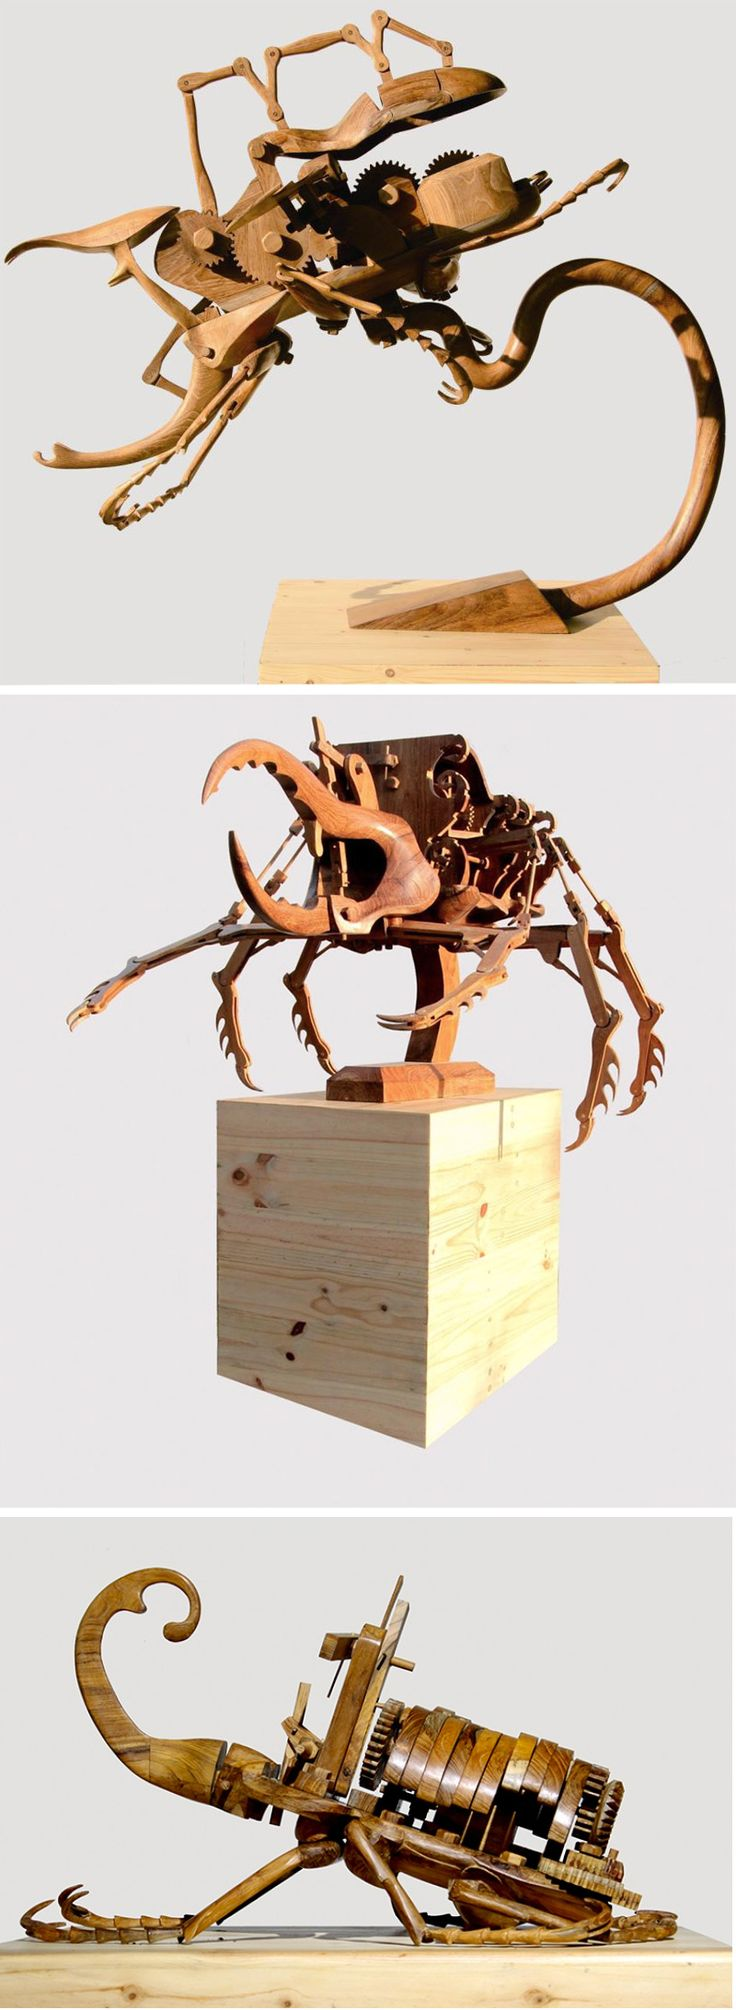 Art fairs mechanical movement metal paris russia sculptures wood - Hybrid Kinetic Insects Carved From Wood By Dedy Shofianto Paper Sculptureswood Sculpturejunk Artassemblage Artroboticsmetal